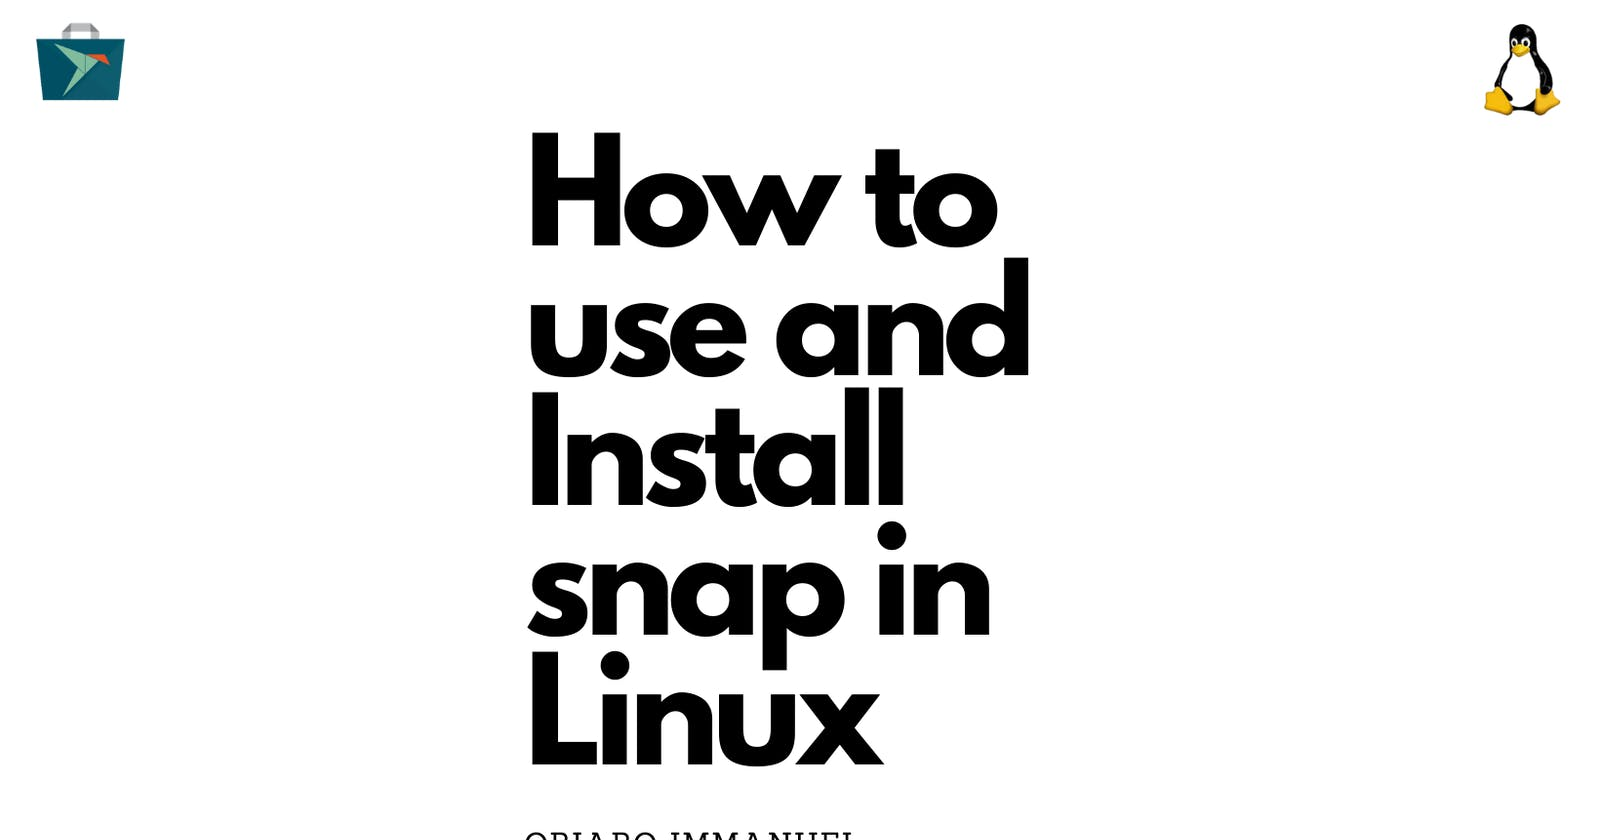 How to install Application on Linux ( using snap )